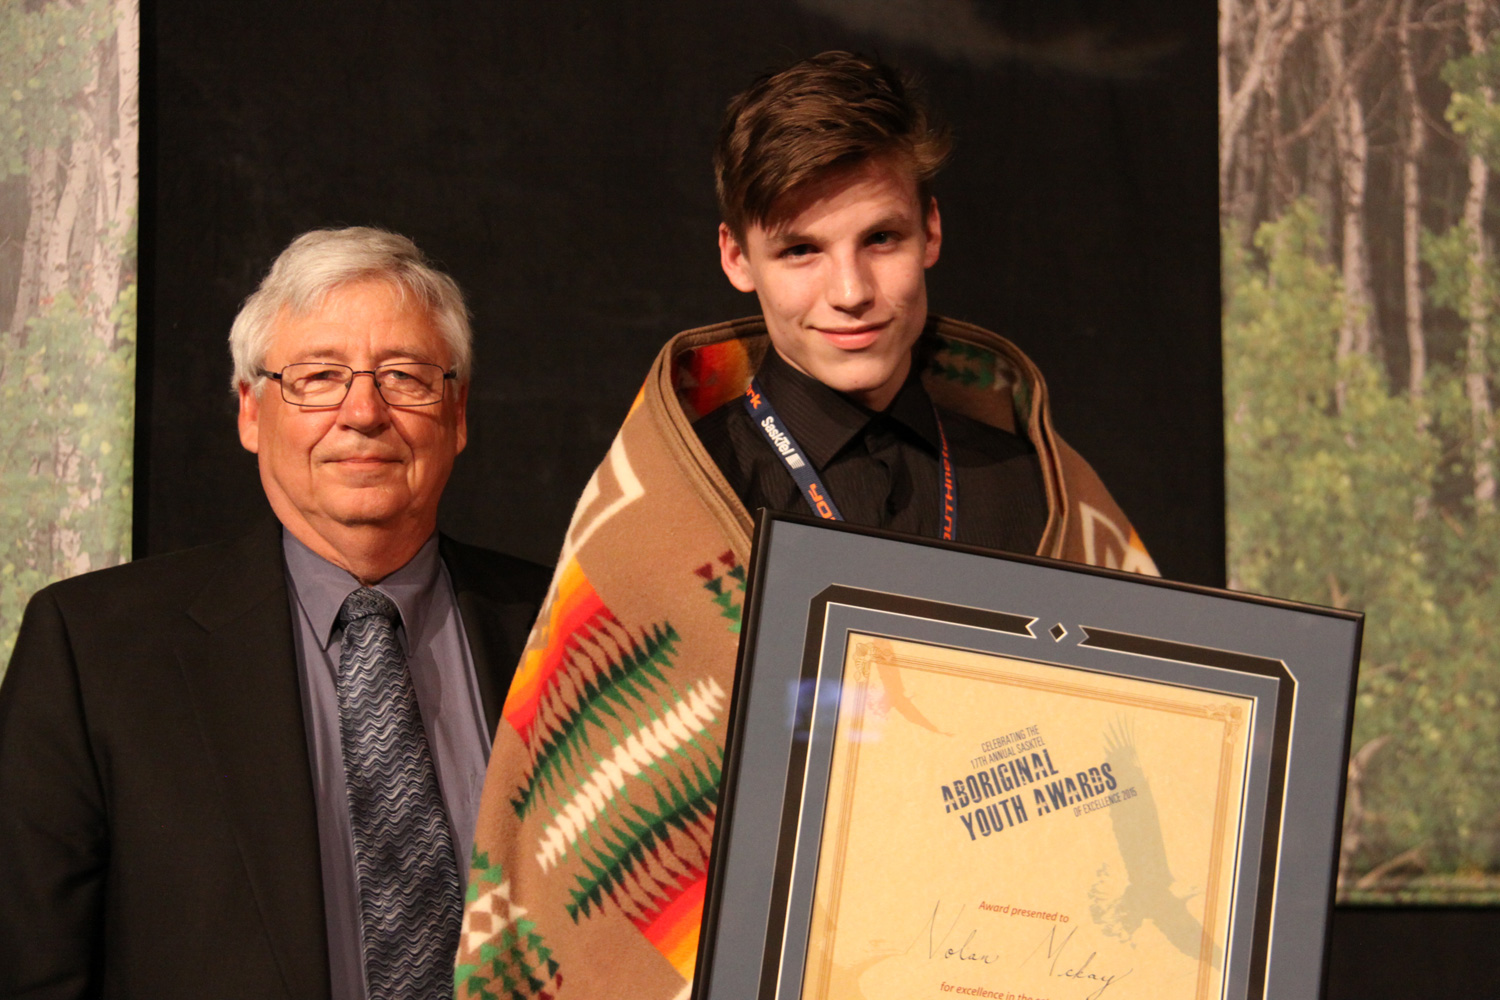 Boxer Nolan McKay received the Male Sport award from Jerry Shoemaker of SaskSport.